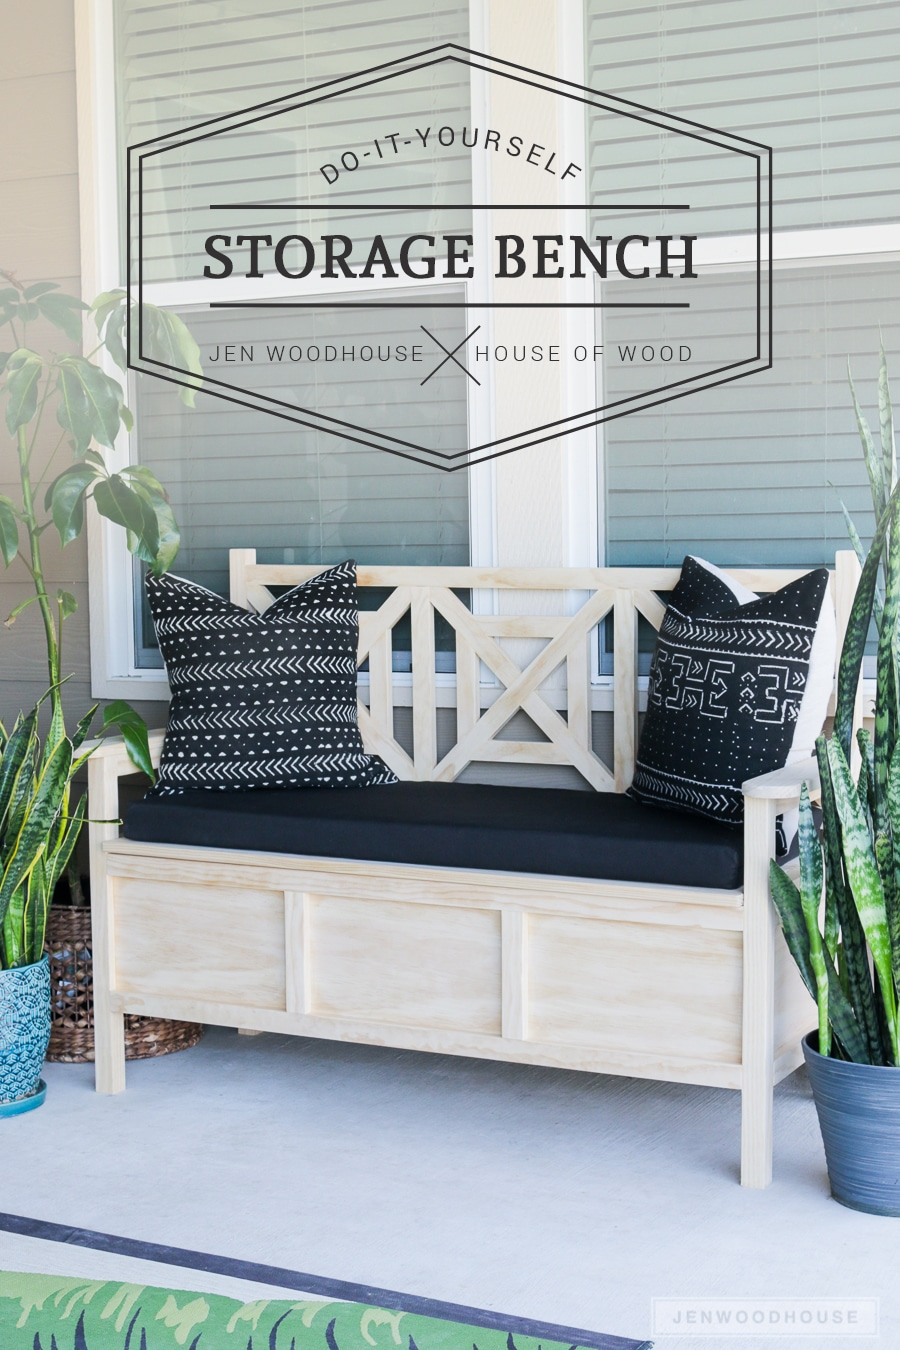 Tremendous How To Build A Diy Outdoor Storage Bench Gmtry Best Dining Table And Chair Ideas Images Gmtryco